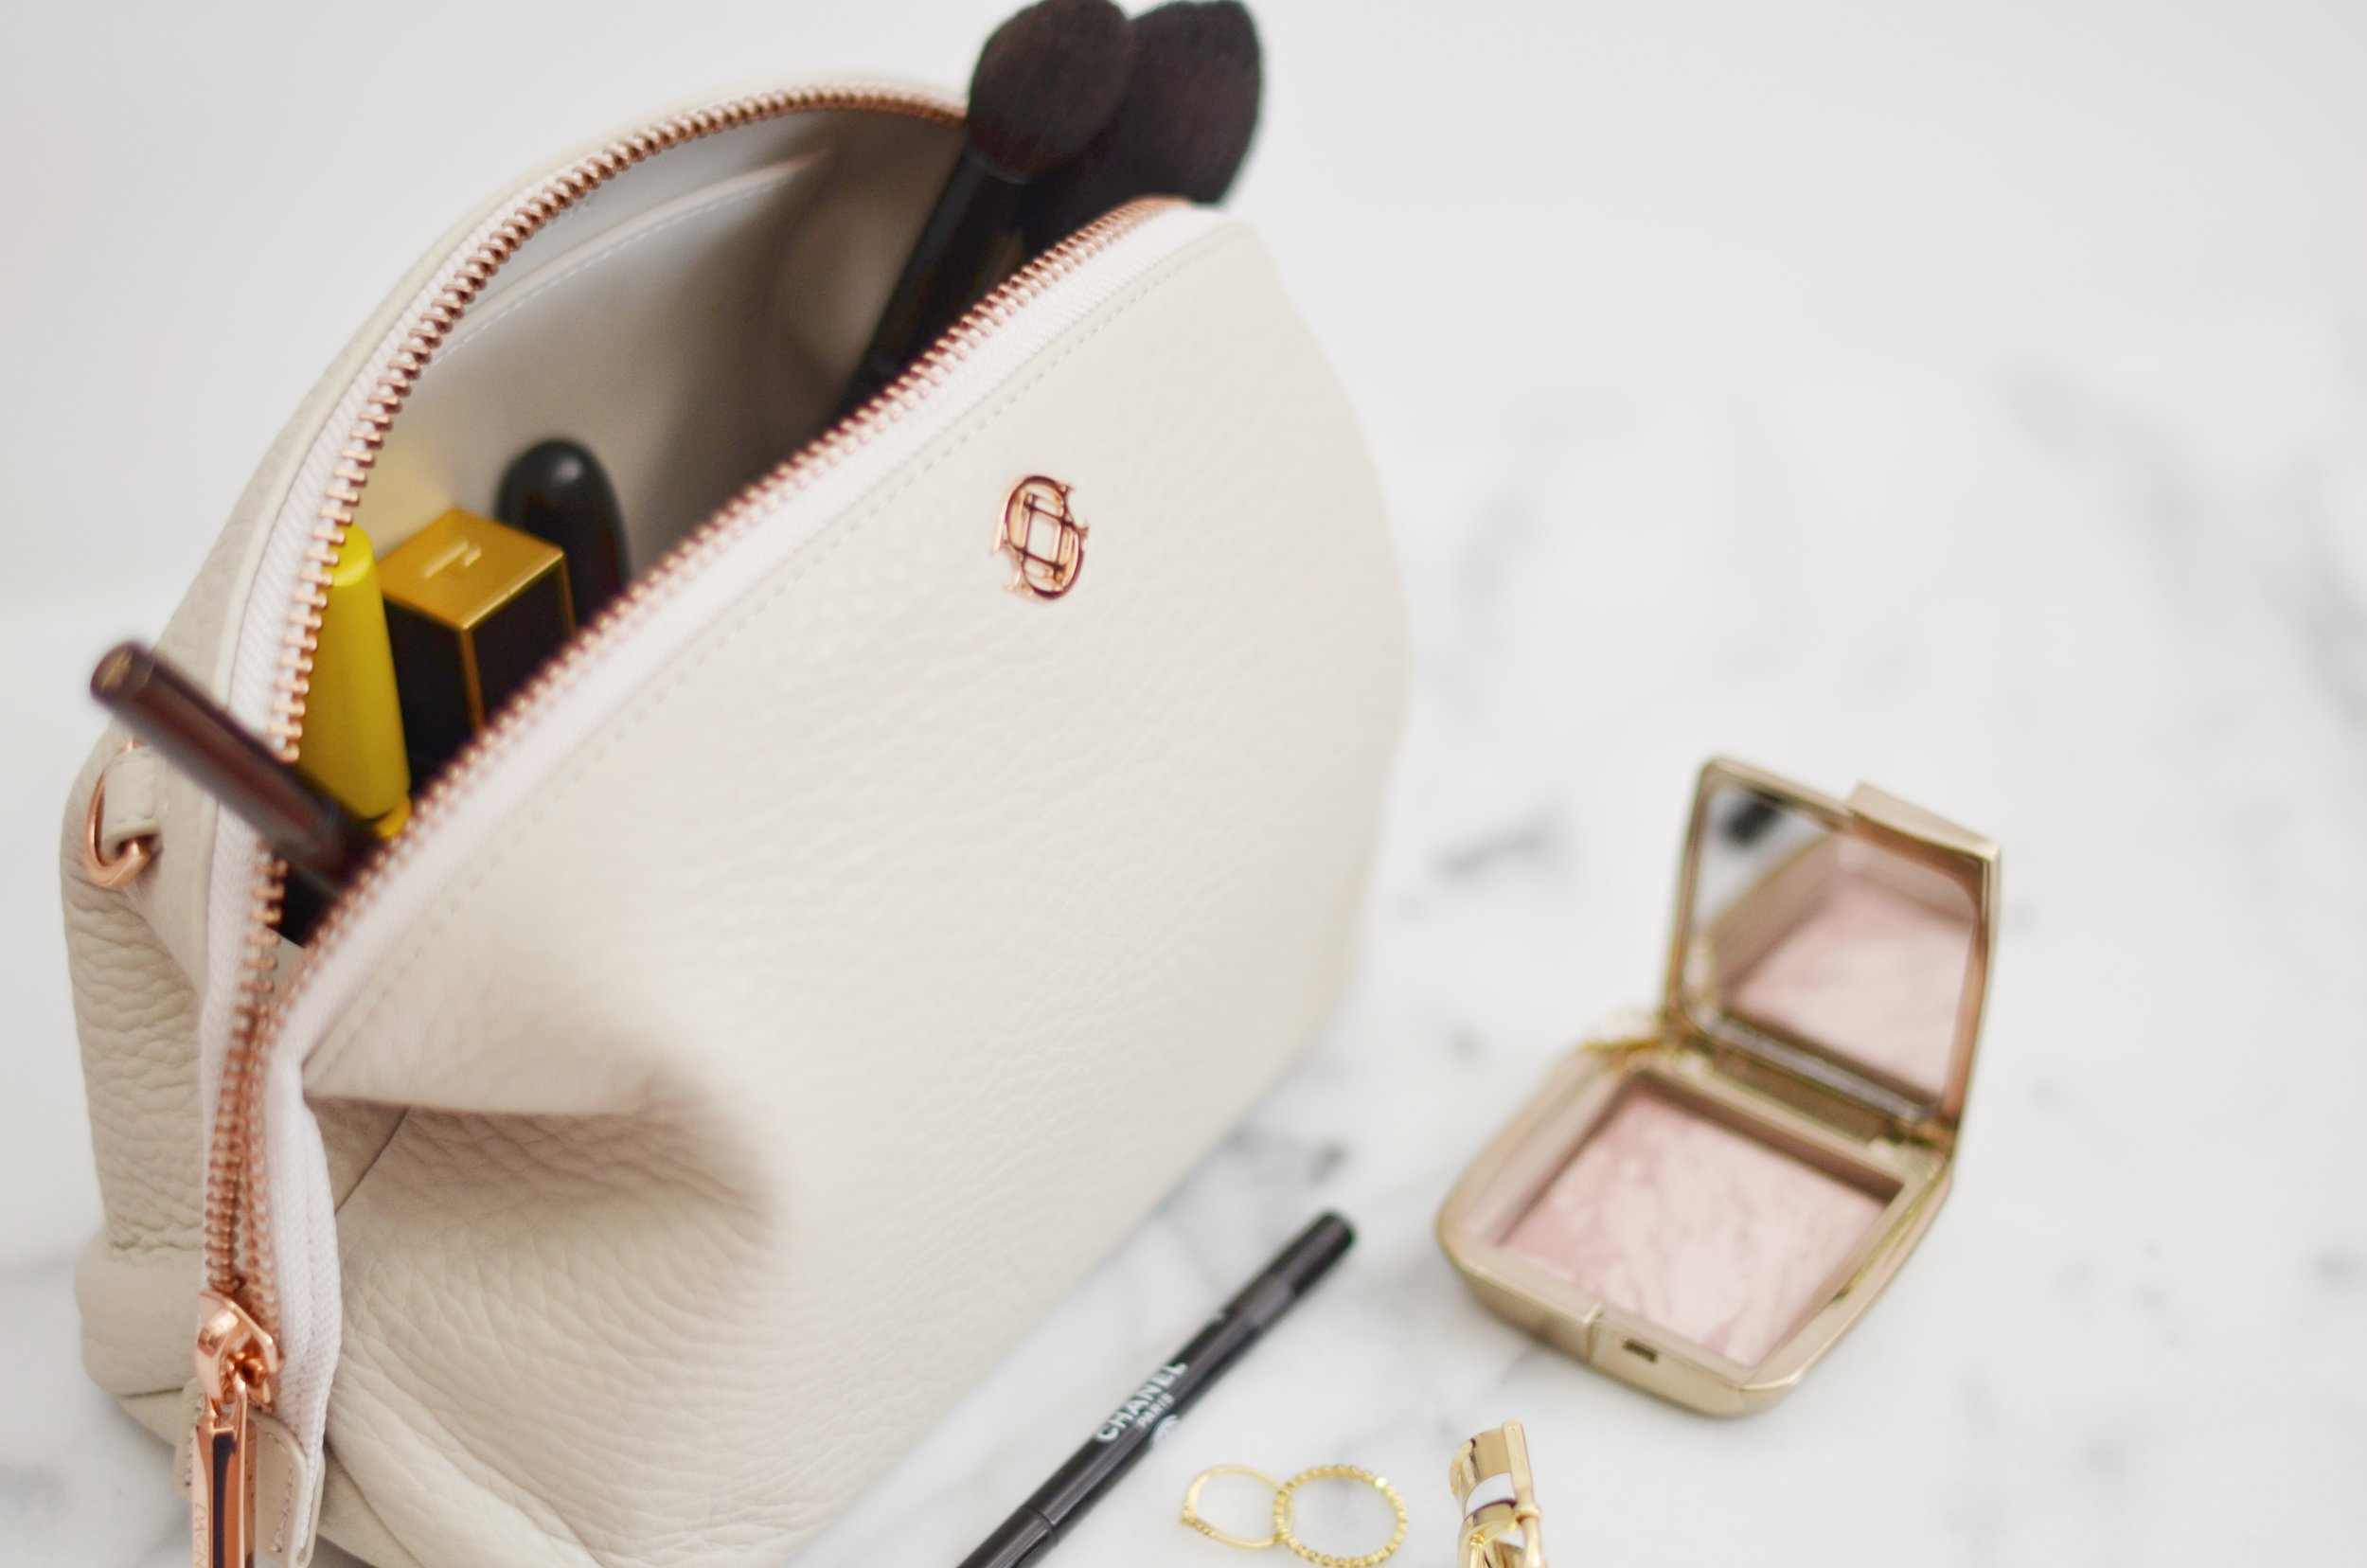 makeup products for photoshoots -- jannadoan.com